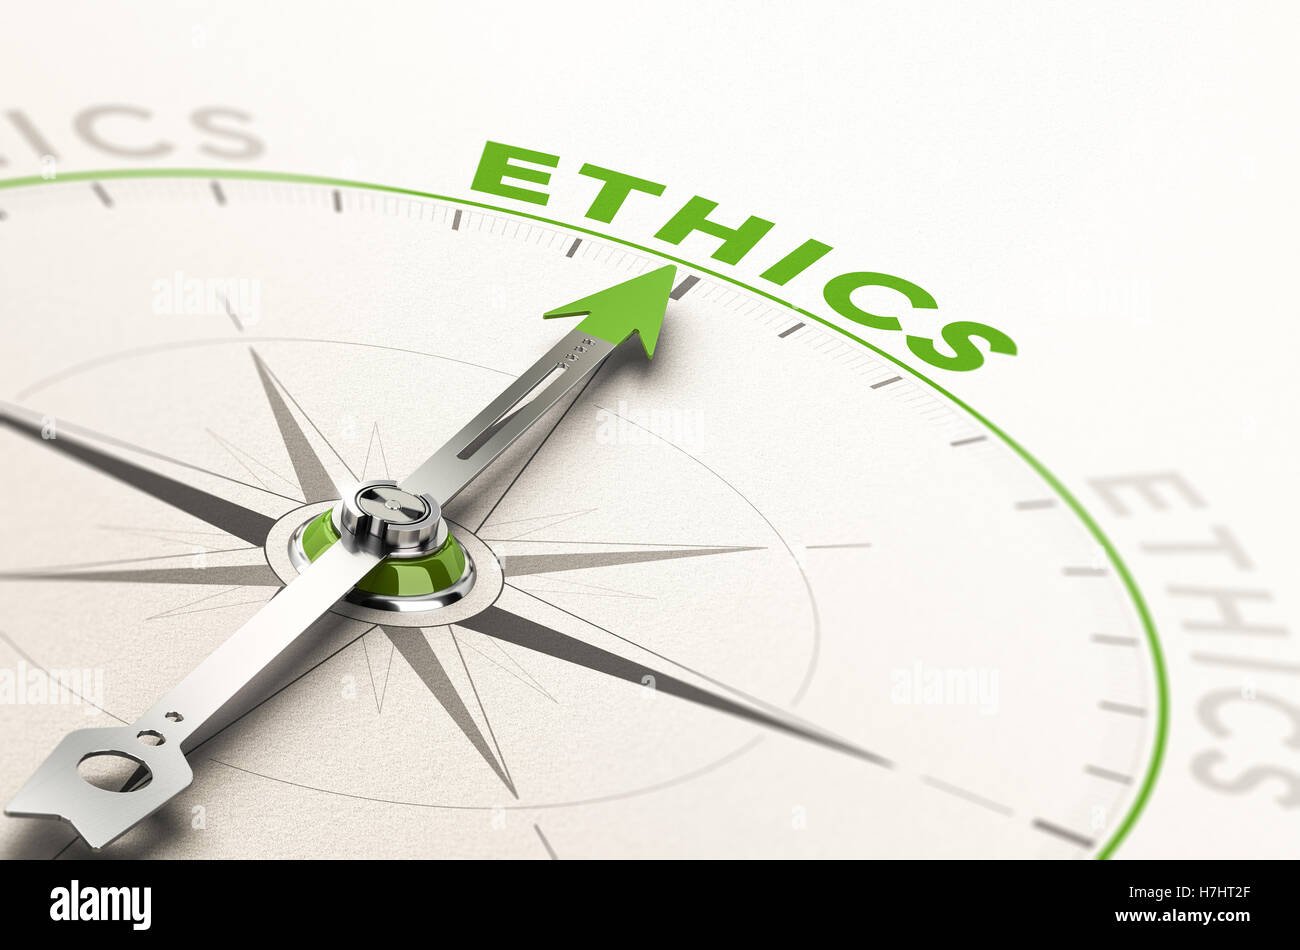 compass with needle pointing the word ethics. Conceptual 3d illustration of business integrity and moral - Stock Image